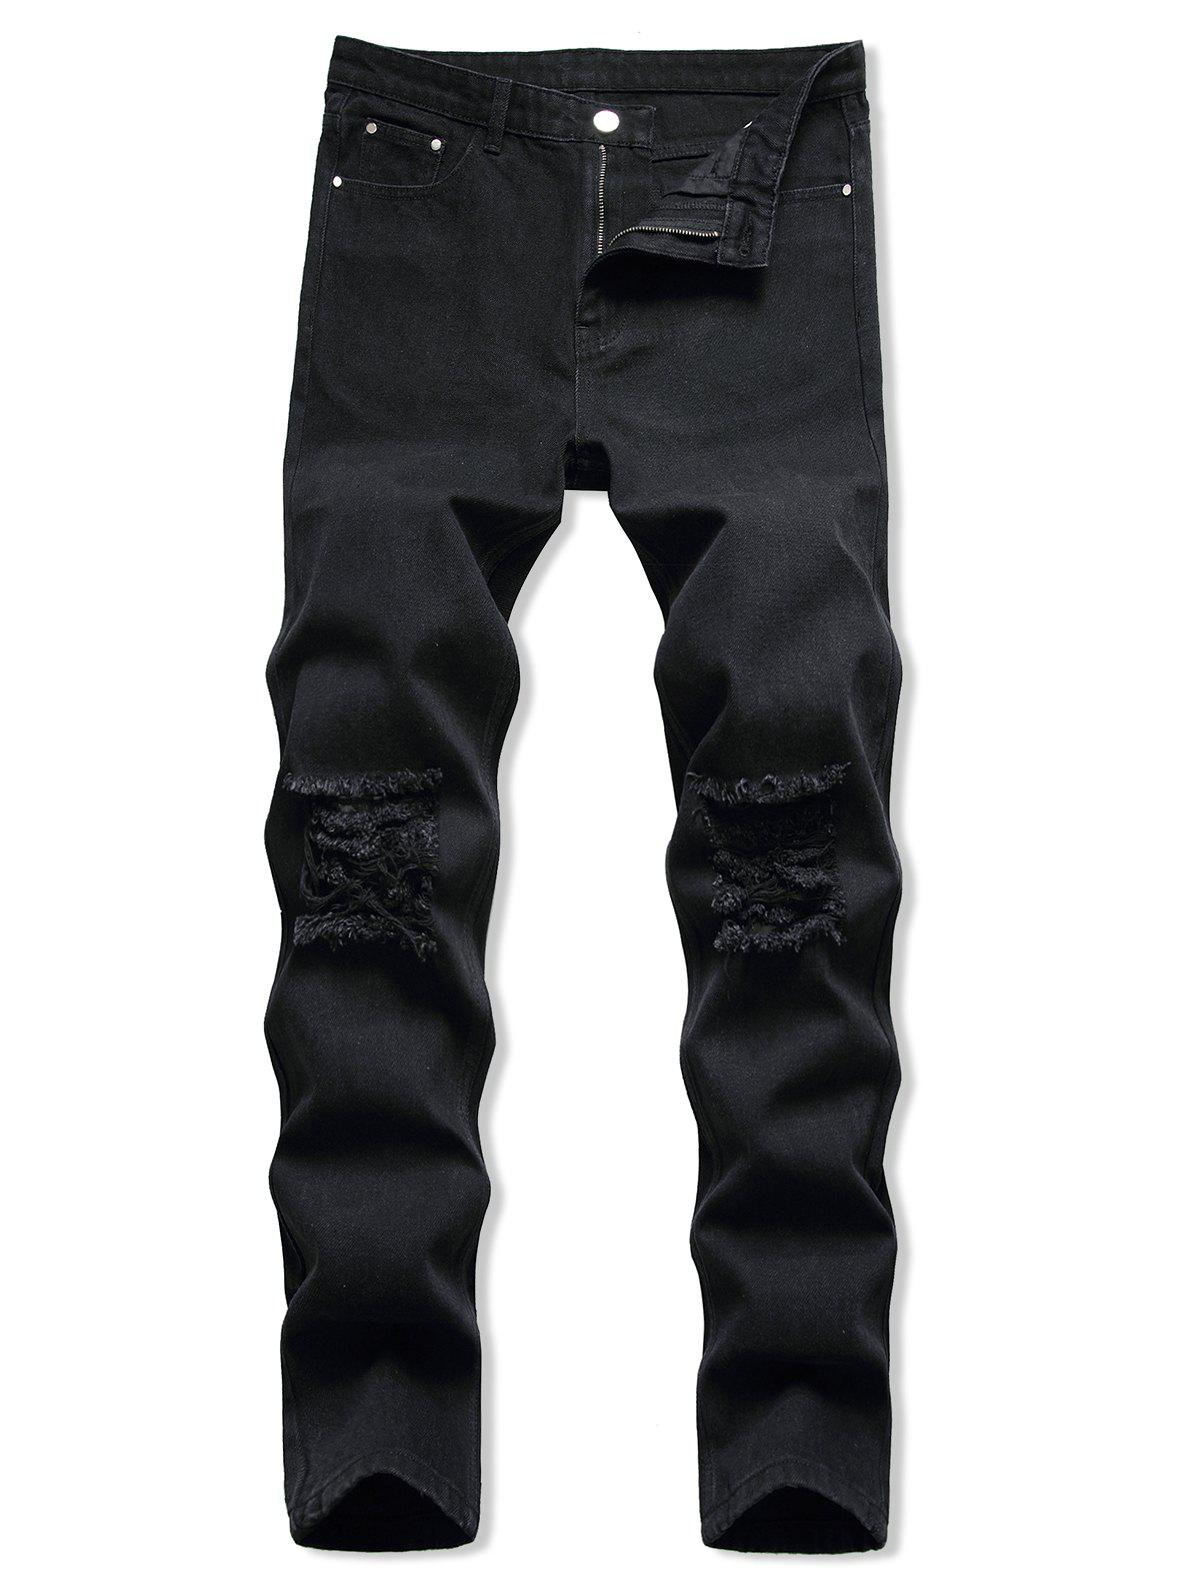 Dark Wash Ripped Zipper Fly Tapered Jeans - BLACK 38